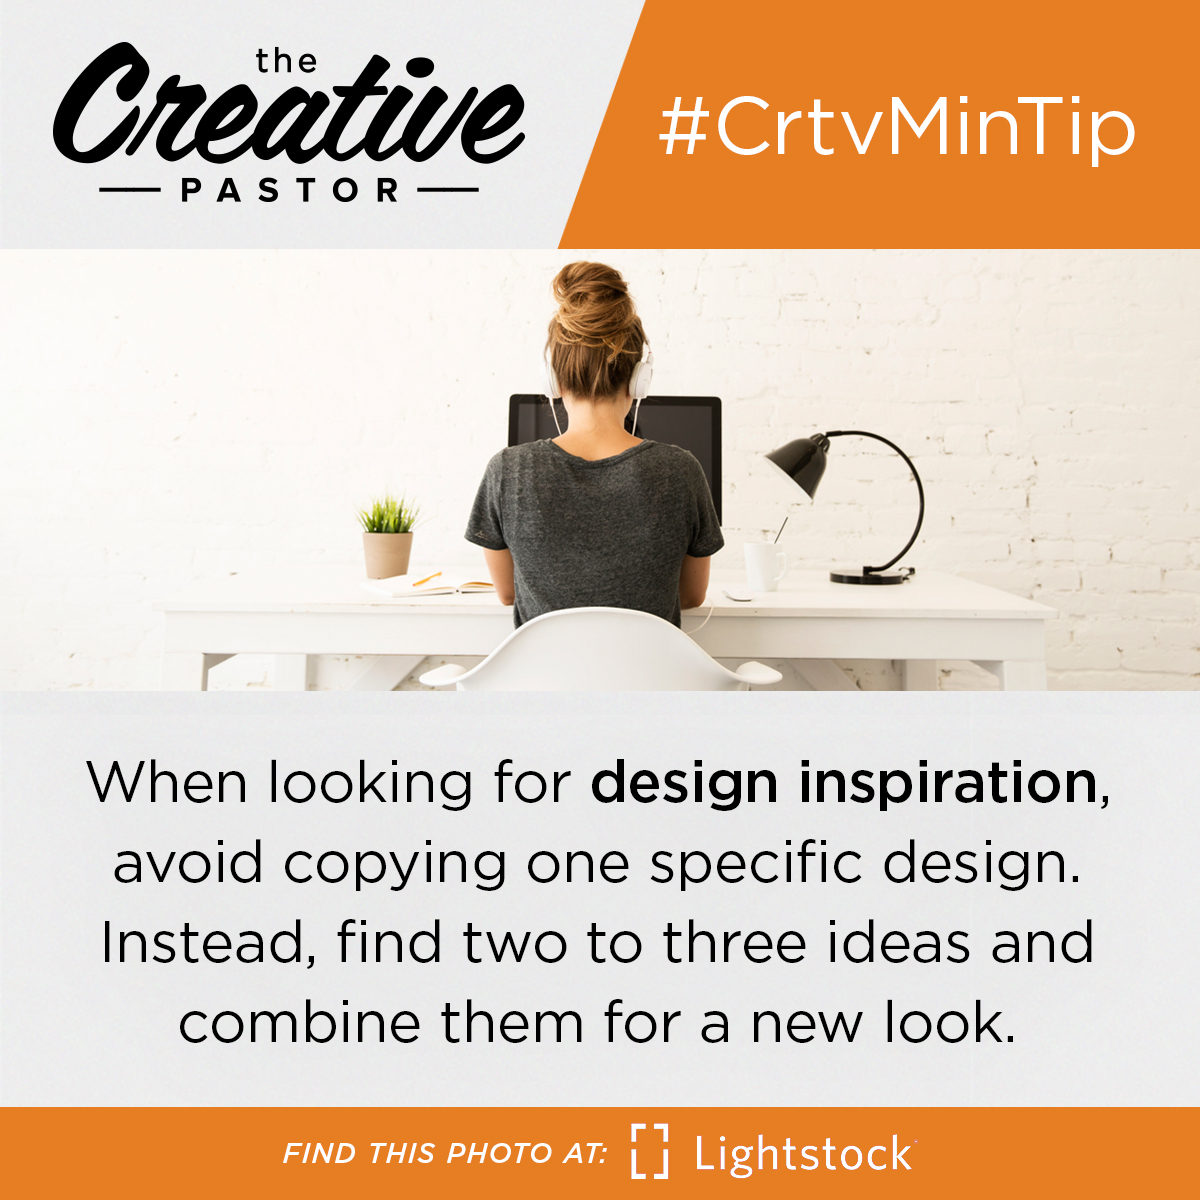 #CrtvMinTip: When looking for design inspiration, avoid copying one specific design. Instead, find two to three ideas and combine them for a new look.